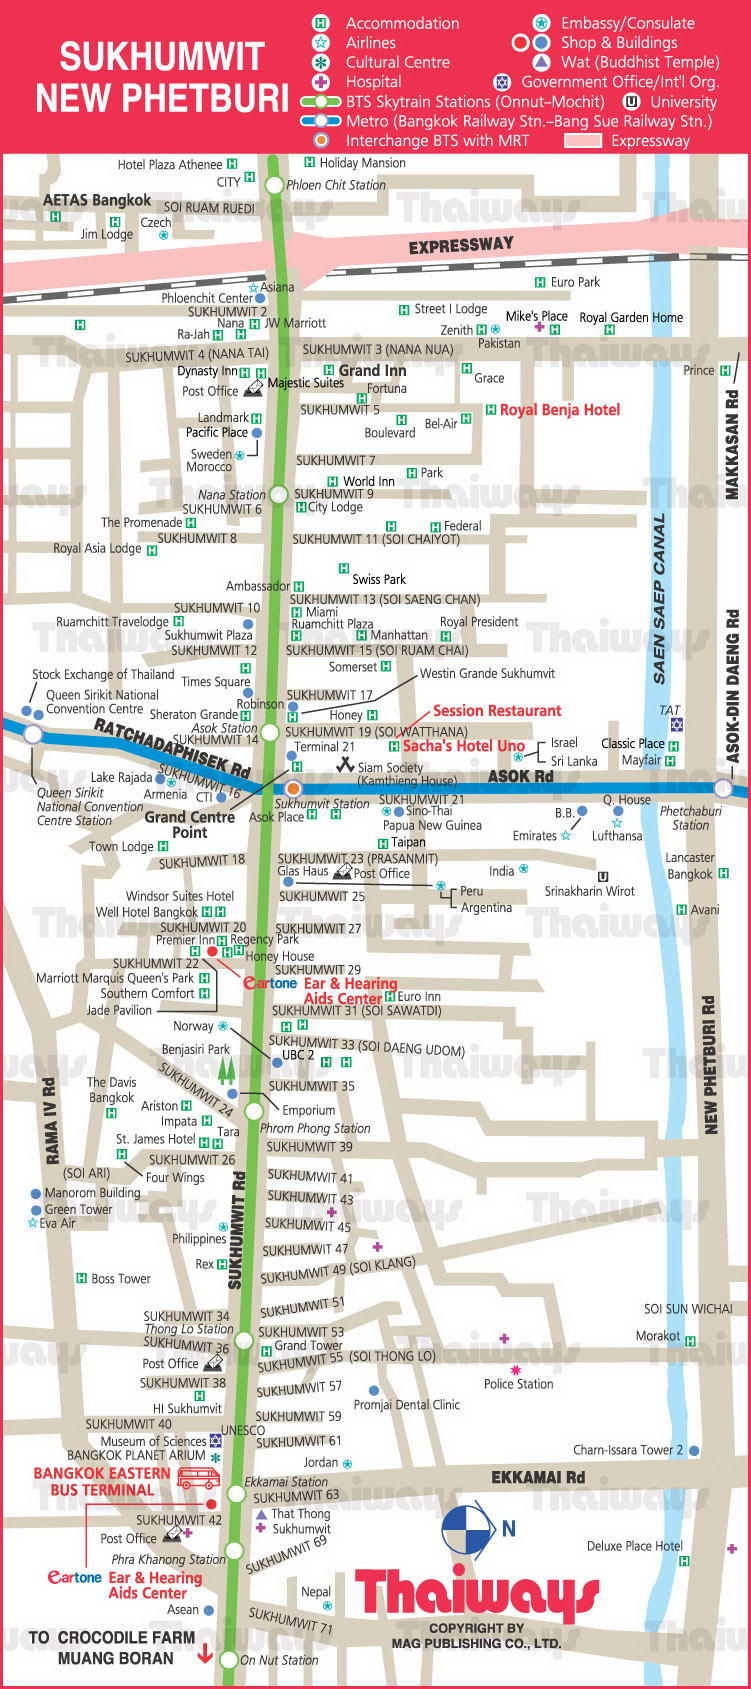 sukhumvit new phetburi map